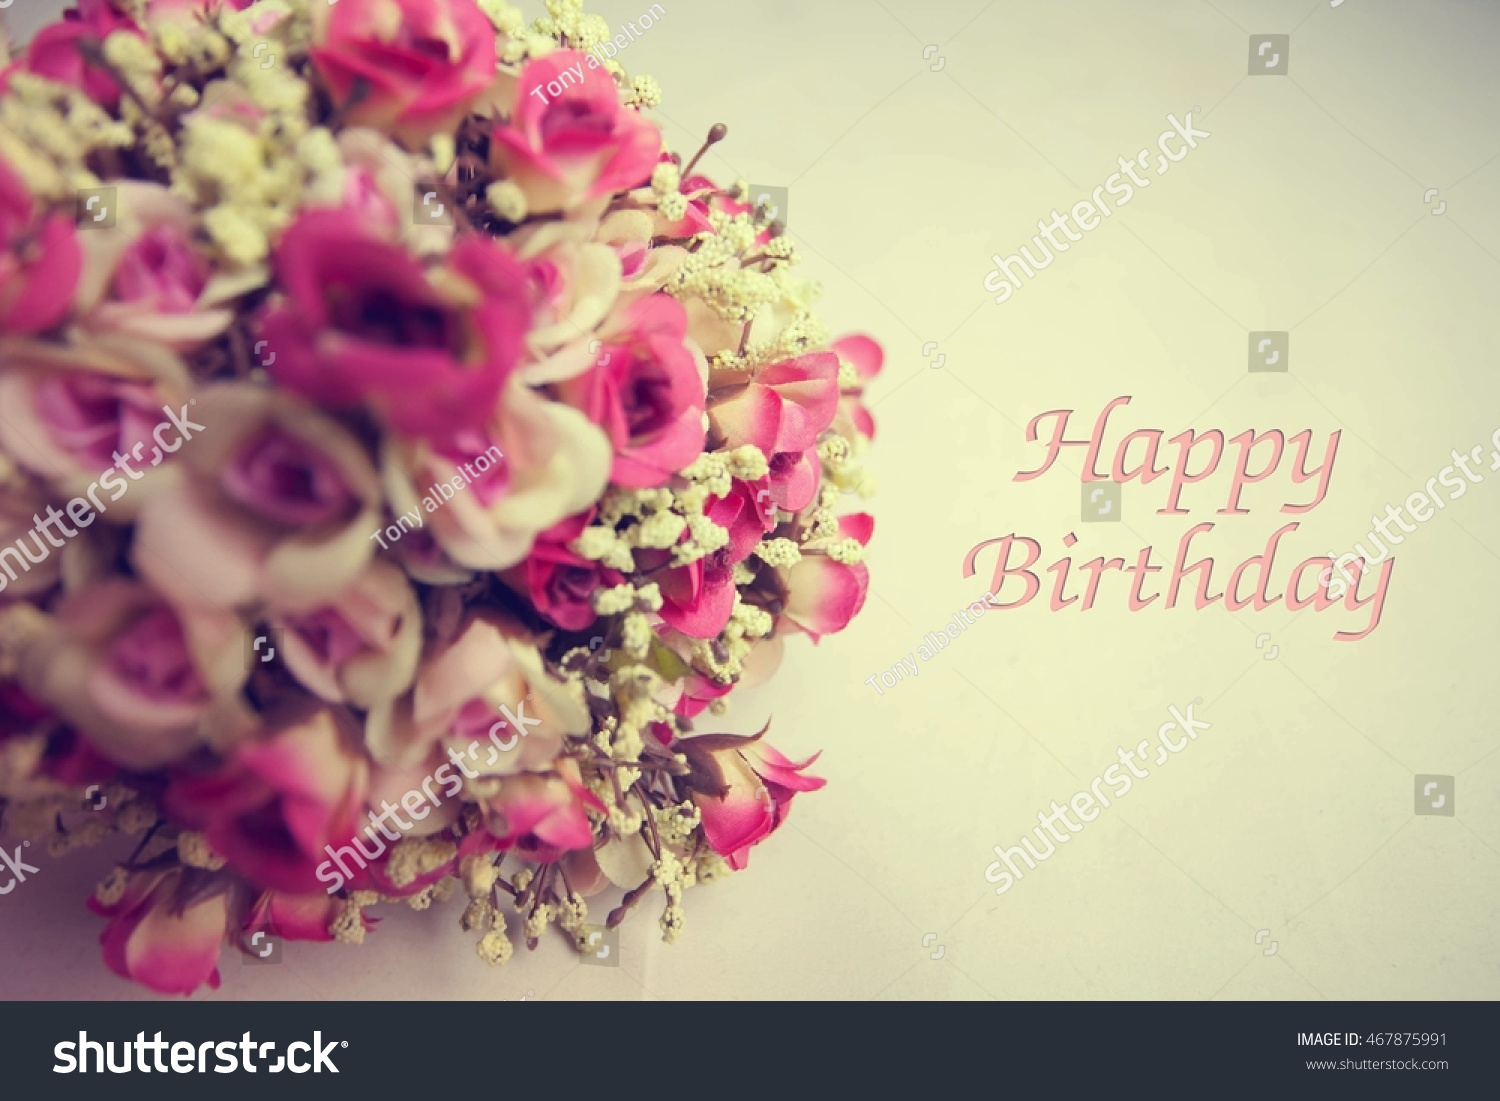 Vintage flowers card happy birthday holiday stock photo edit now vintage flowers and card happy birthday holiday background select focus blur background izmirmasajfo